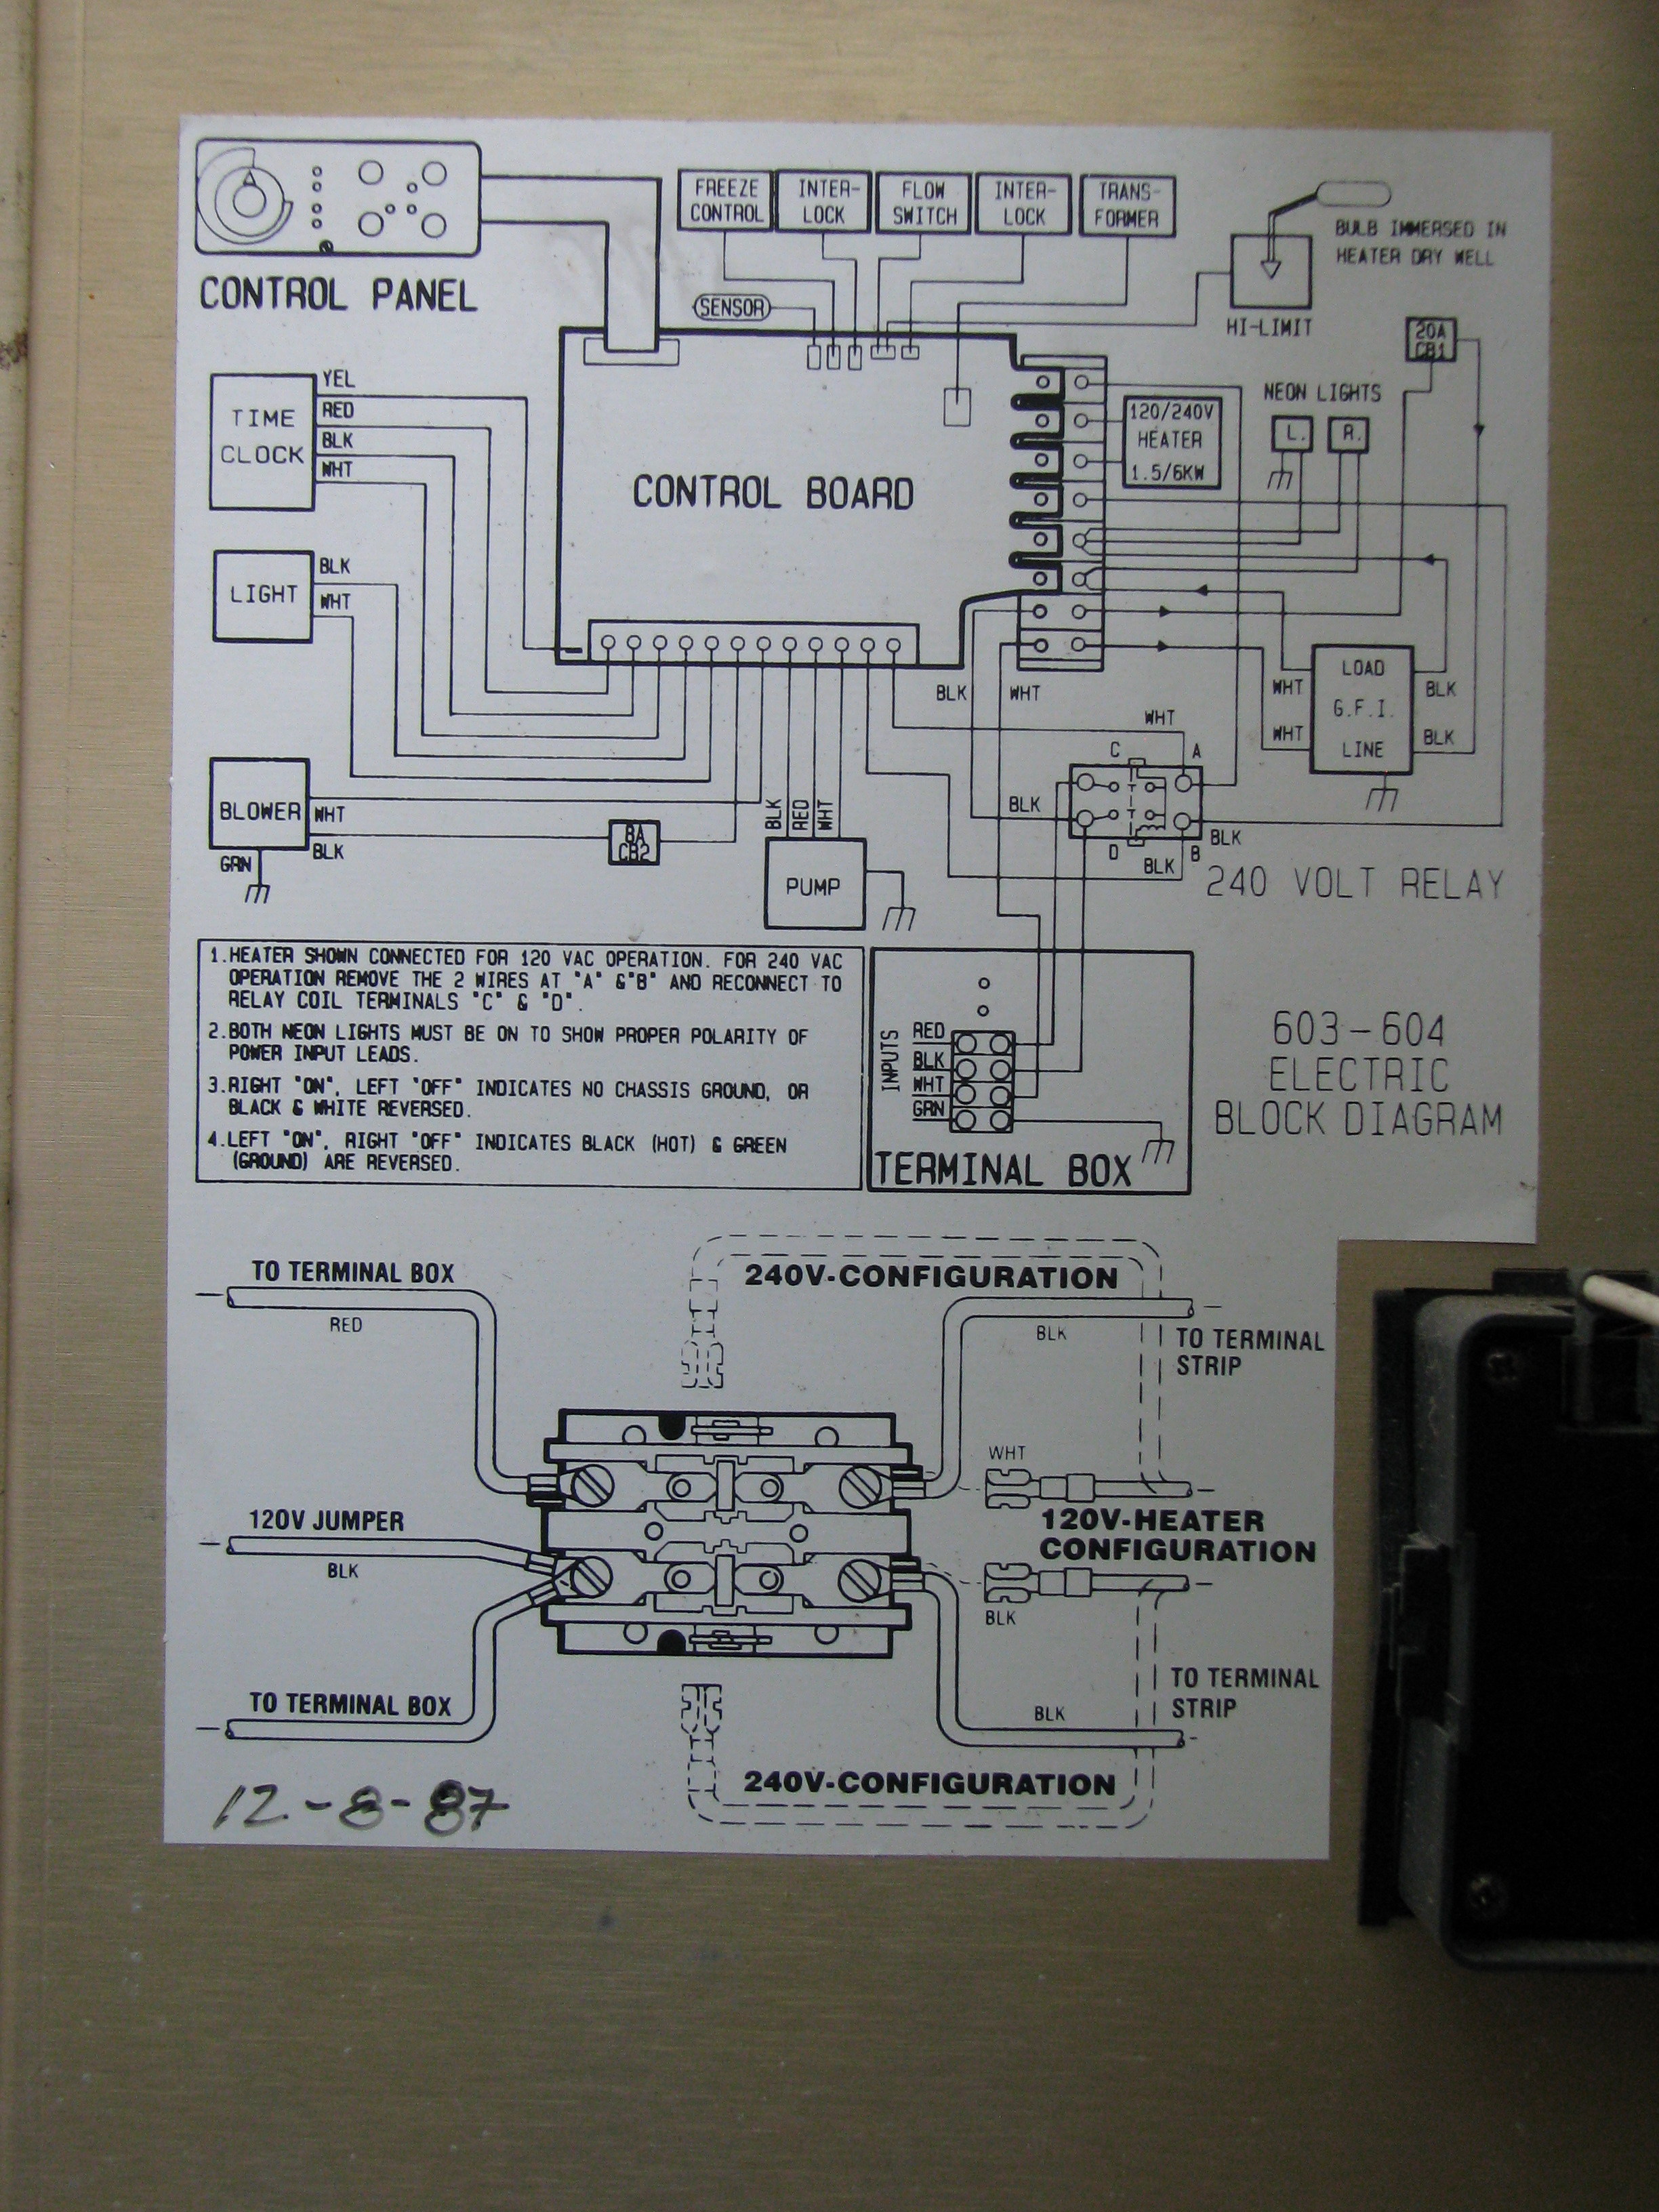 2012 05 28_172054_002 jacuzzi hot tub diagram periodic & diagrams science sundance spa wiring diagram at gsmportal.co